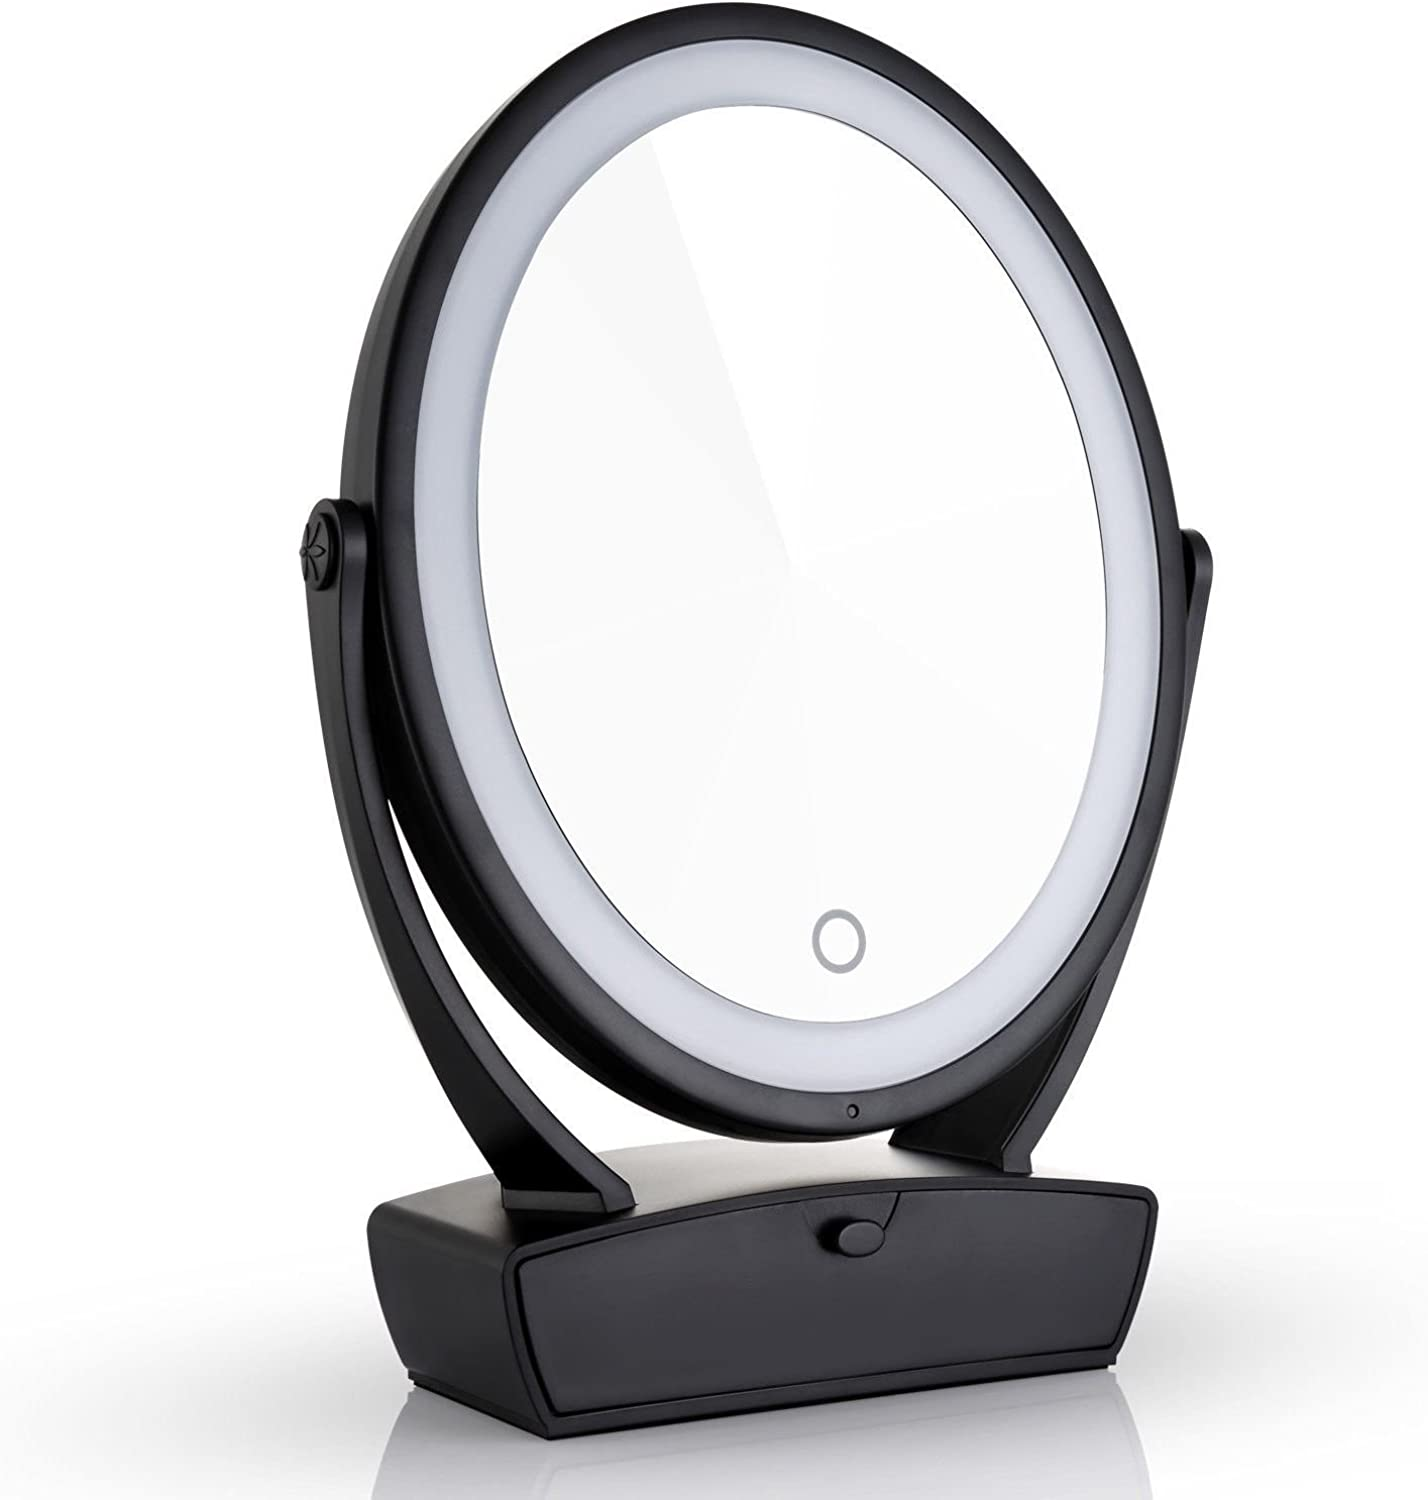 Makeup Mirror,Two Sided Lighted Mirror Round Vanity Drawer X 7X 15X Magnification USB Charge